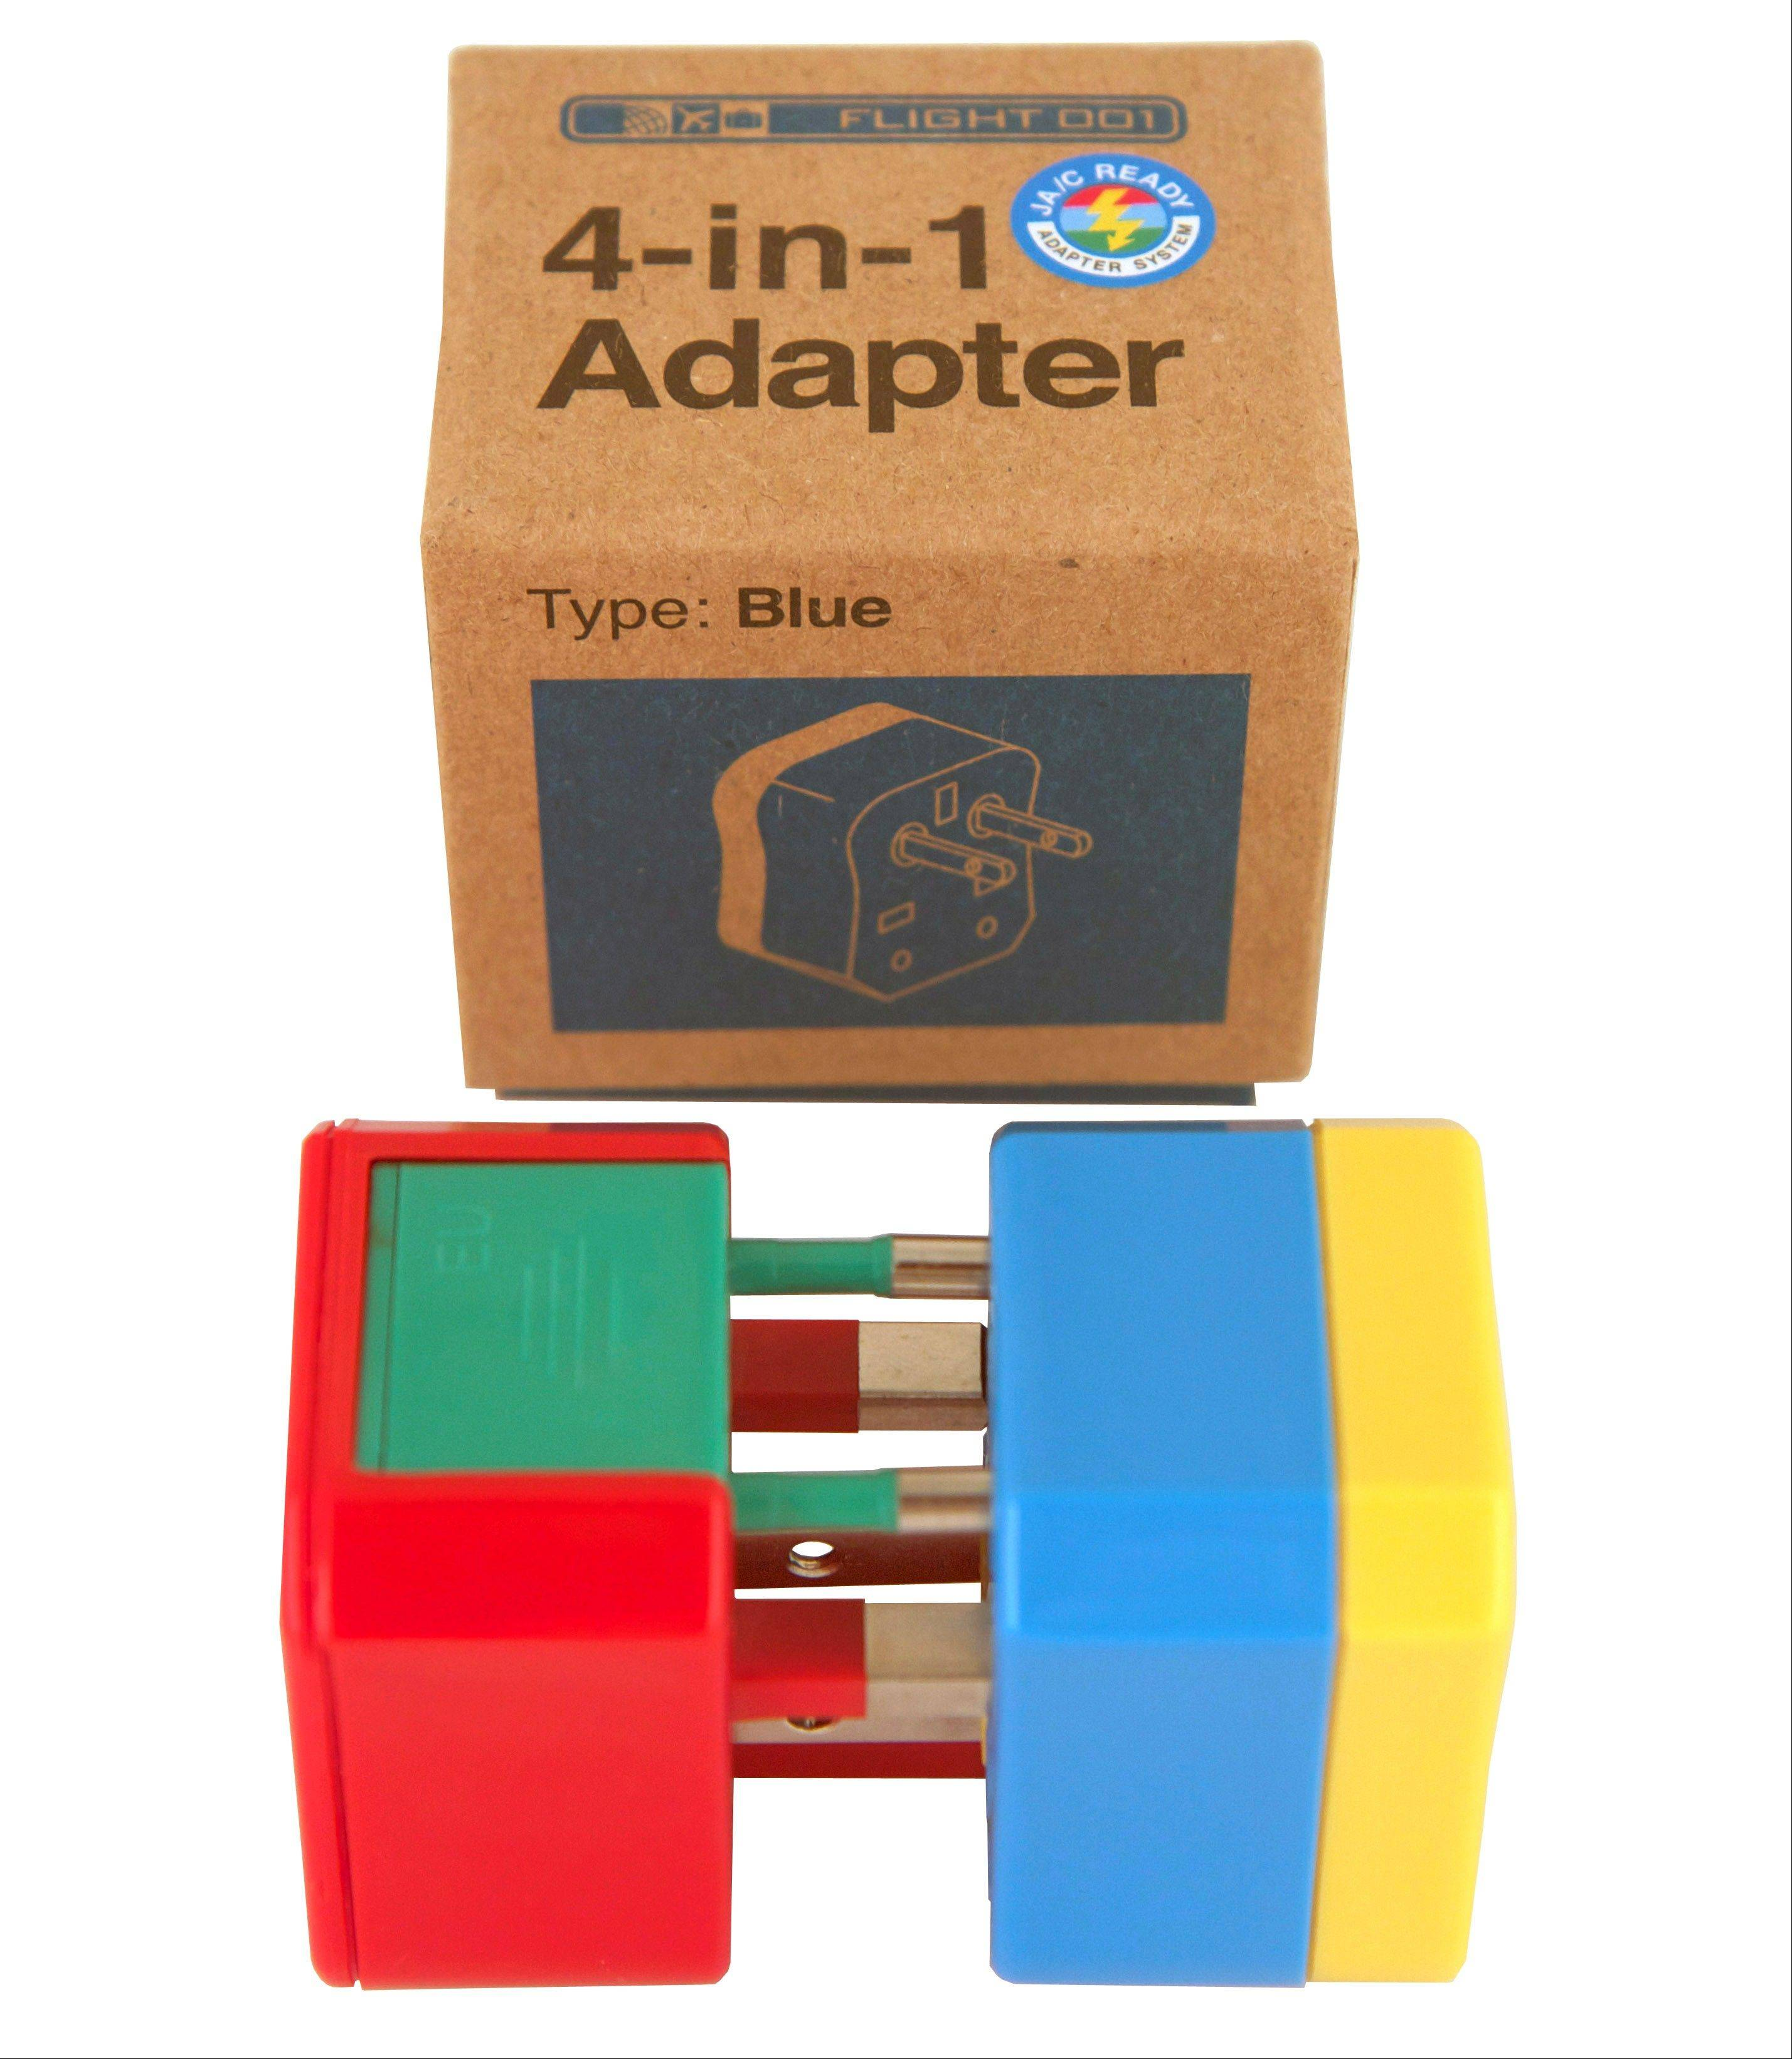 The 4-in-1 adapter, with four color-coded plugs, works in 150 countries.